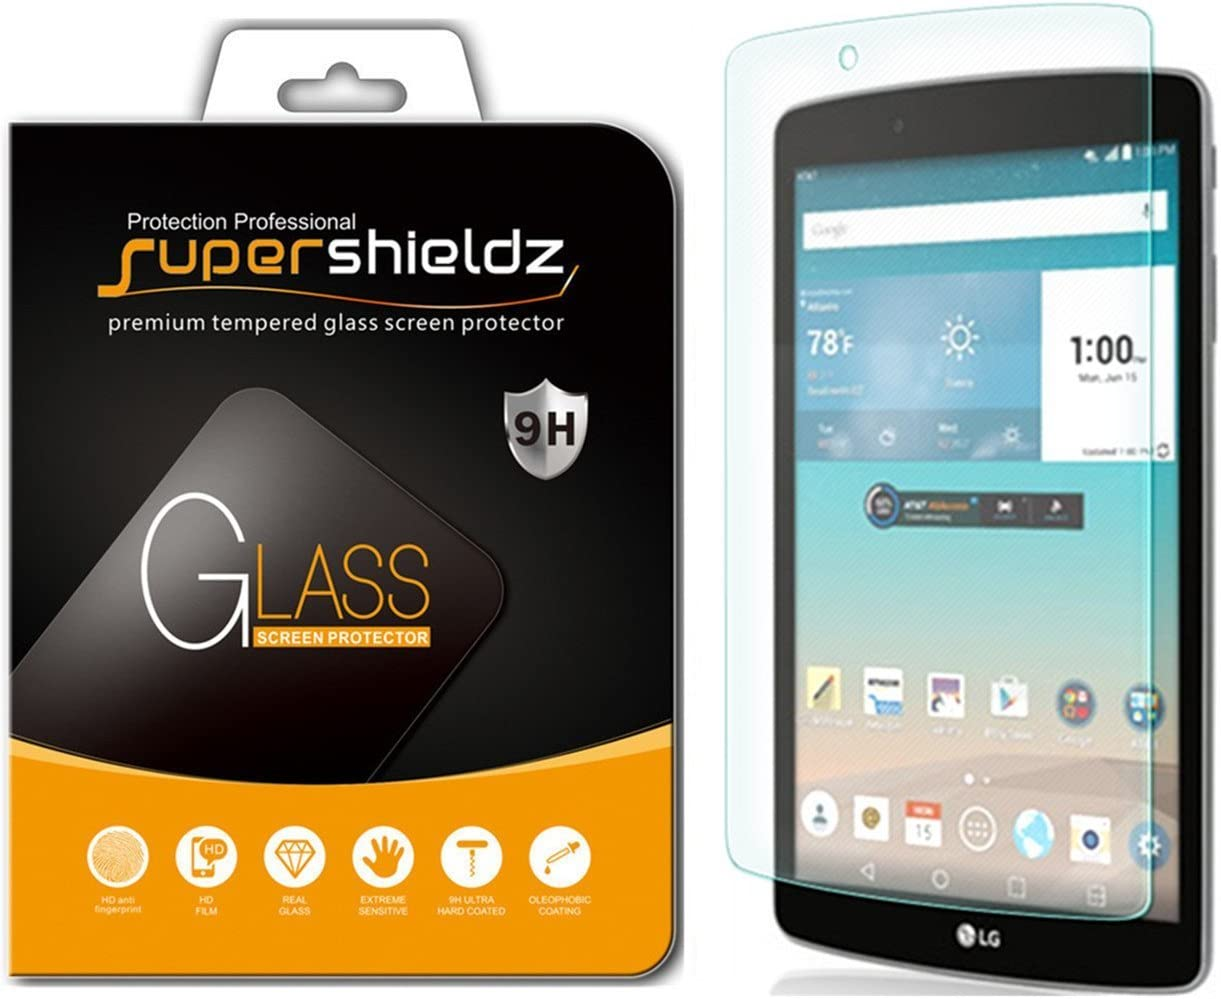 Anti Scratch 2 Pack Supershieldz for LG G Pad F 8.0 and LG G Pad F 8.0 Screen Protector, Bubble Free Tempered Glass 2nd Gen